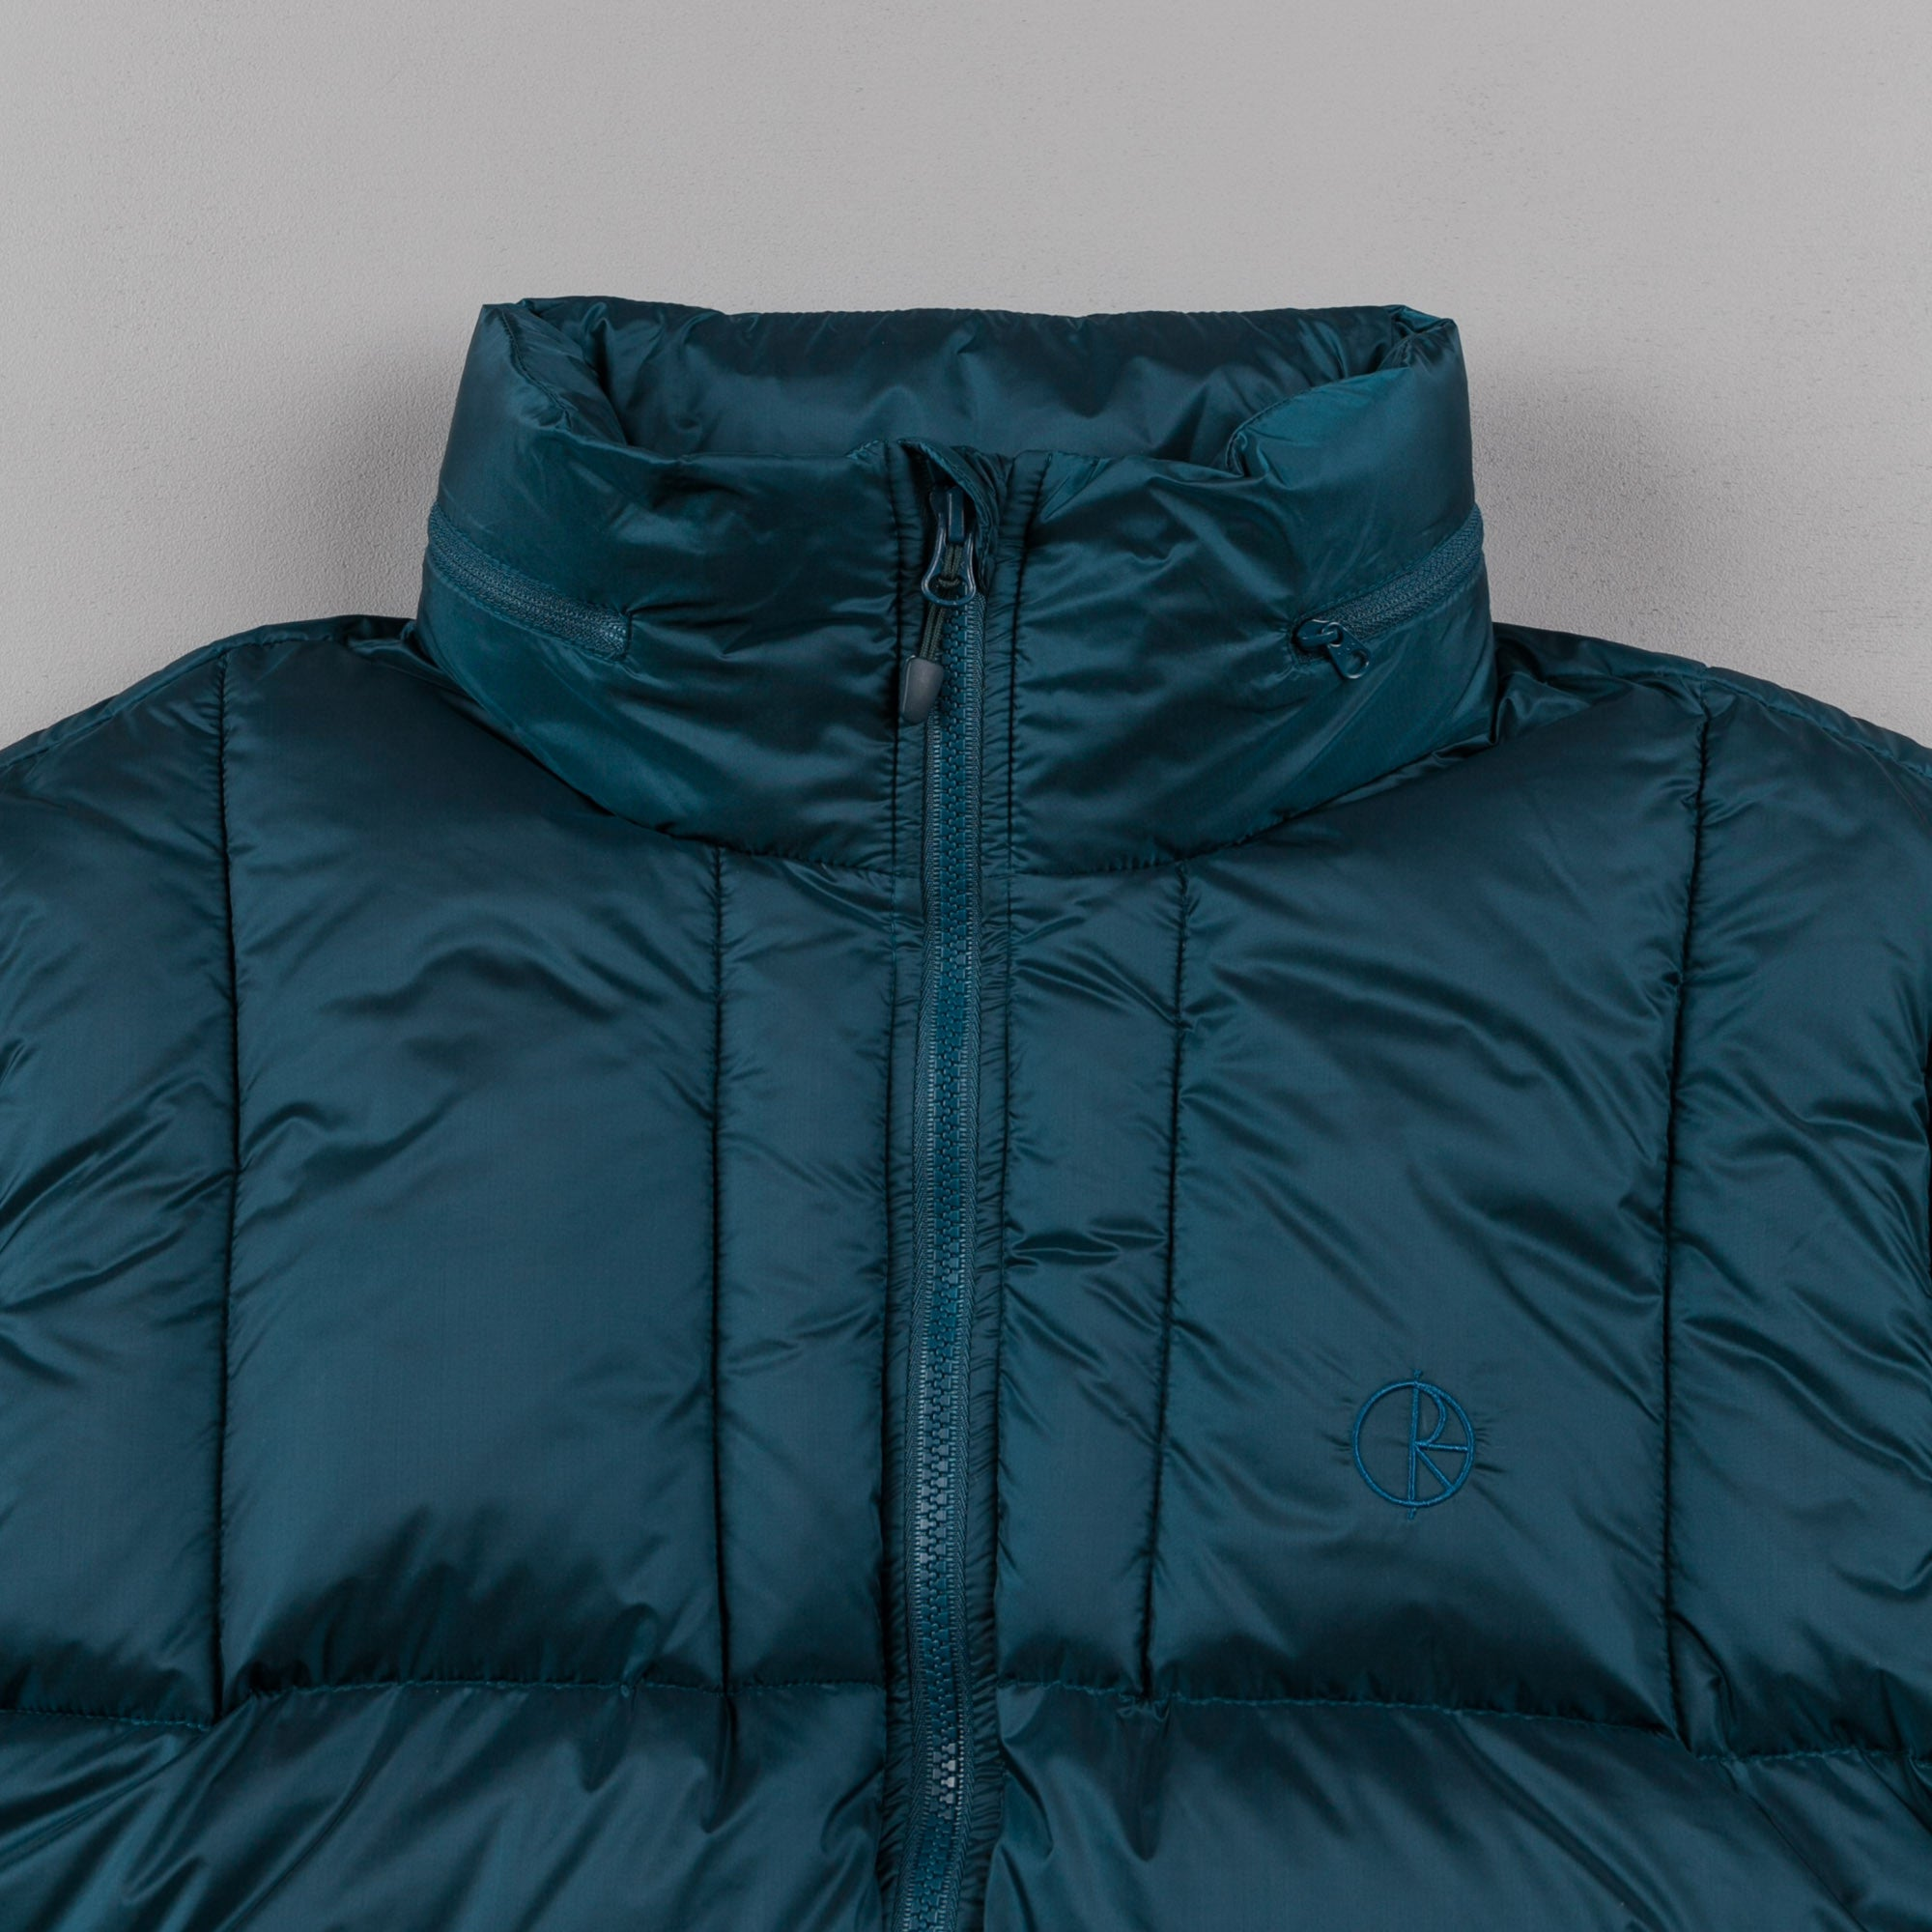 Polar '92 Puffer Jacket - Obsidian Blue